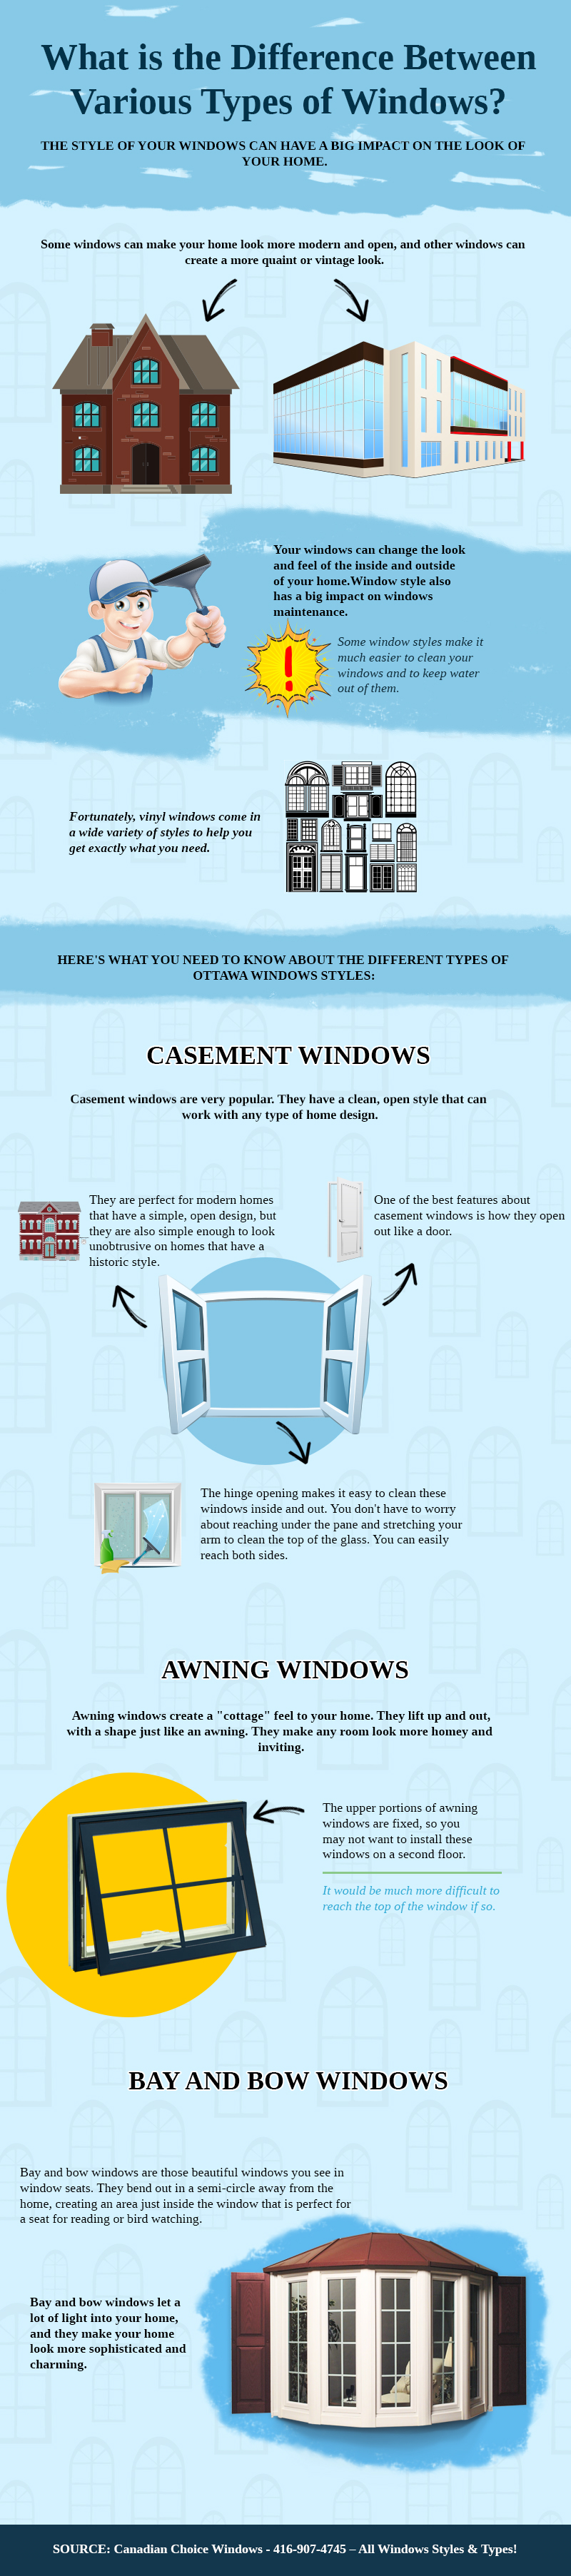 What is the Difference Between Various Types of Windows? - Infographic